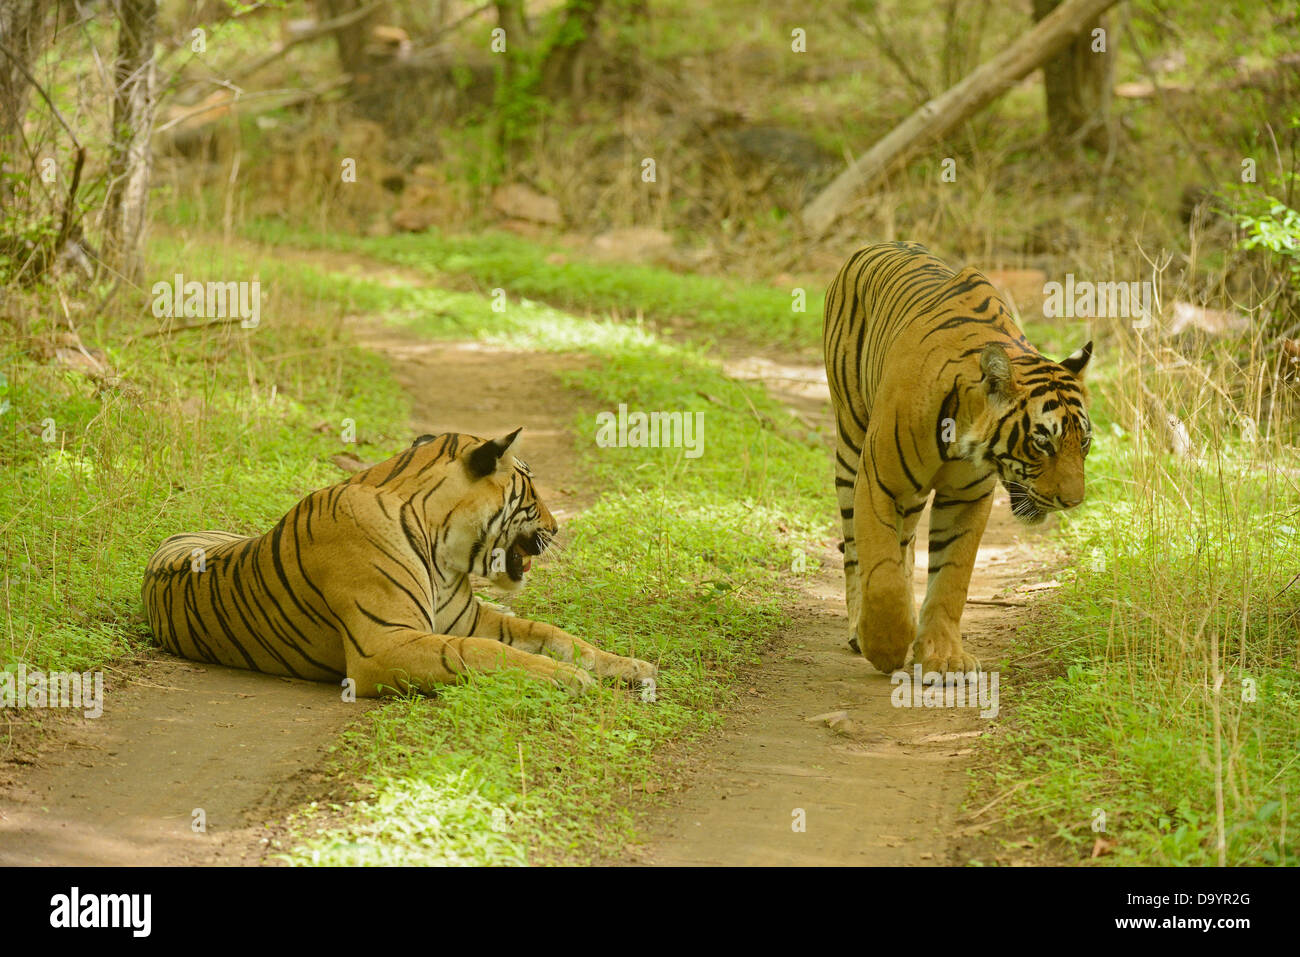 Two wild tigers on a forest path in the forests of Ranthambhore during monsoons Stock Photo